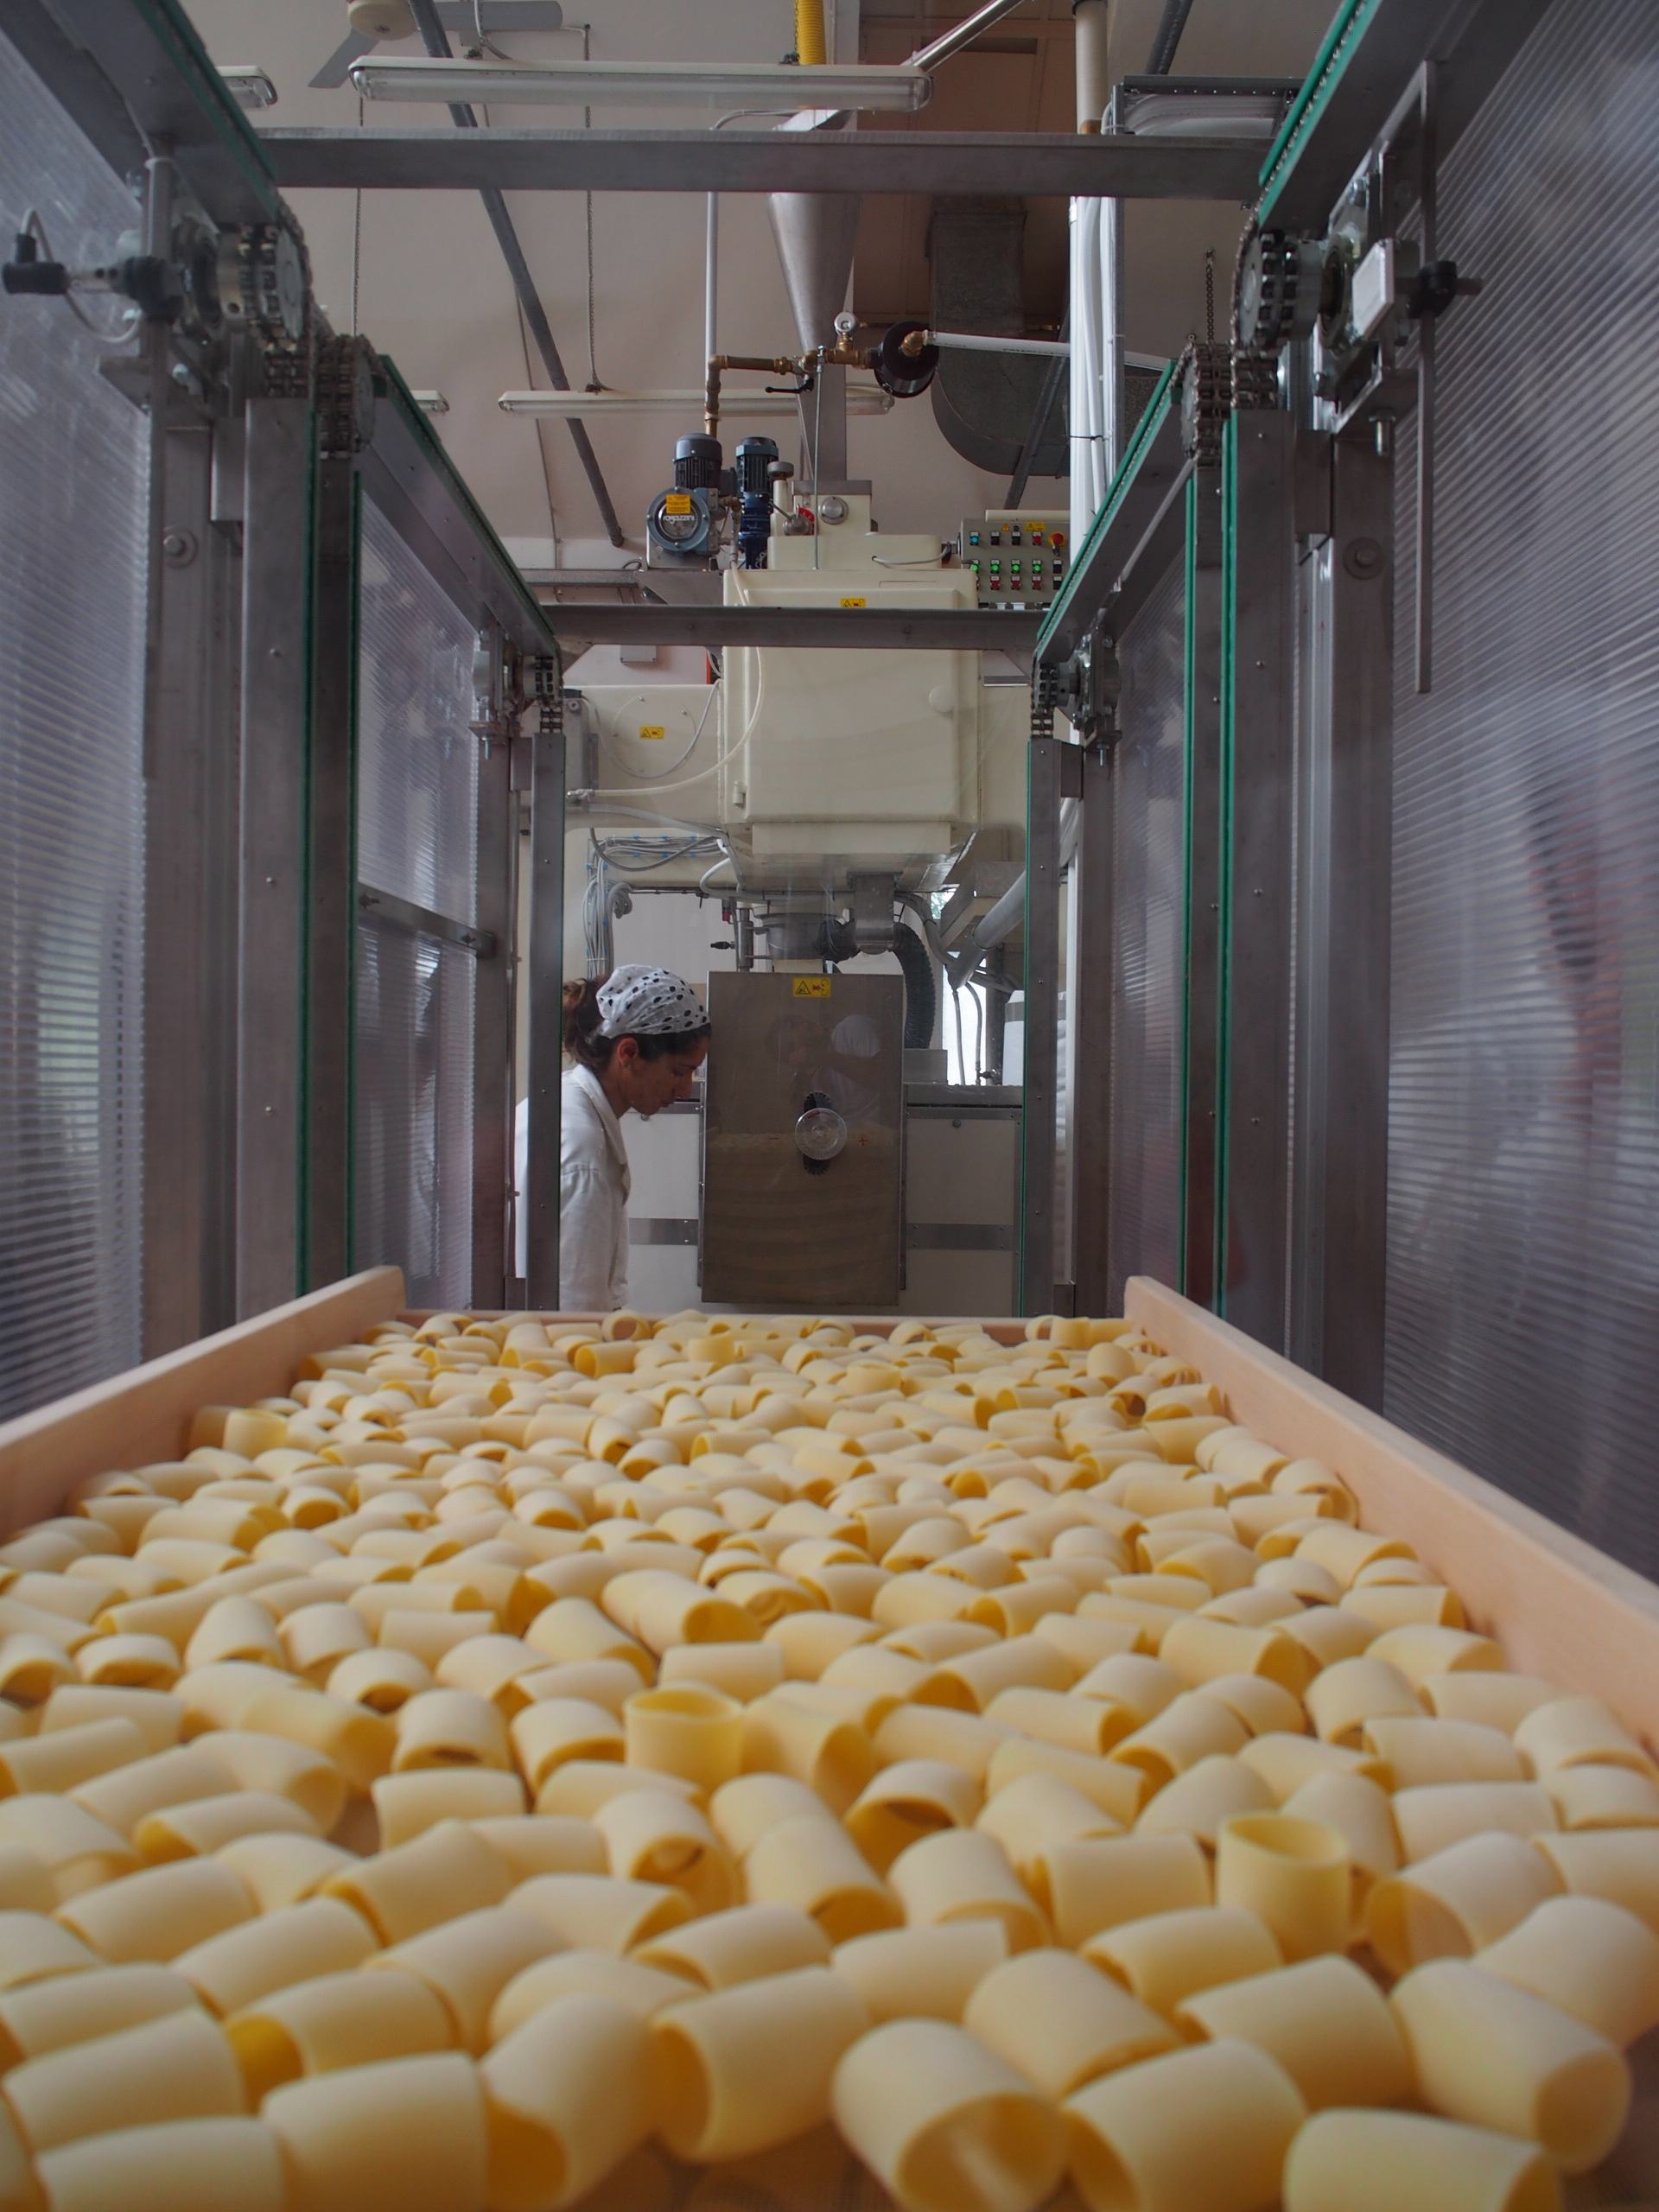 Today, the pasta of Pasta Michele Portoghese is made using the traditional methods, but is guaranteed with state-of-the-art quality controls, hand selected grains and the perfect dose of durum wheat semolina.